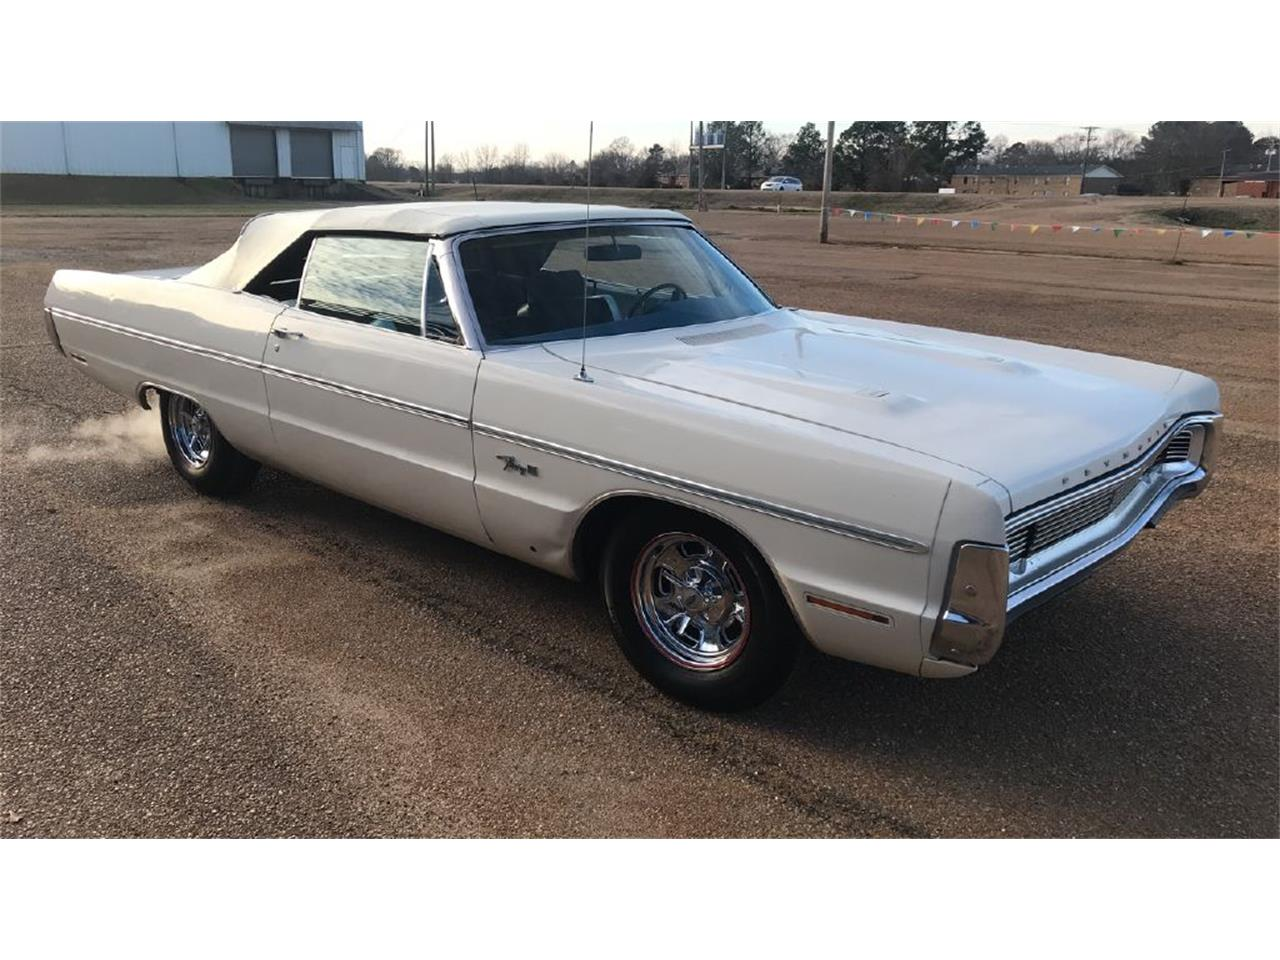 1970 Plymouth Fury III (CC-1209377) for sale in Batesville, Mississippi